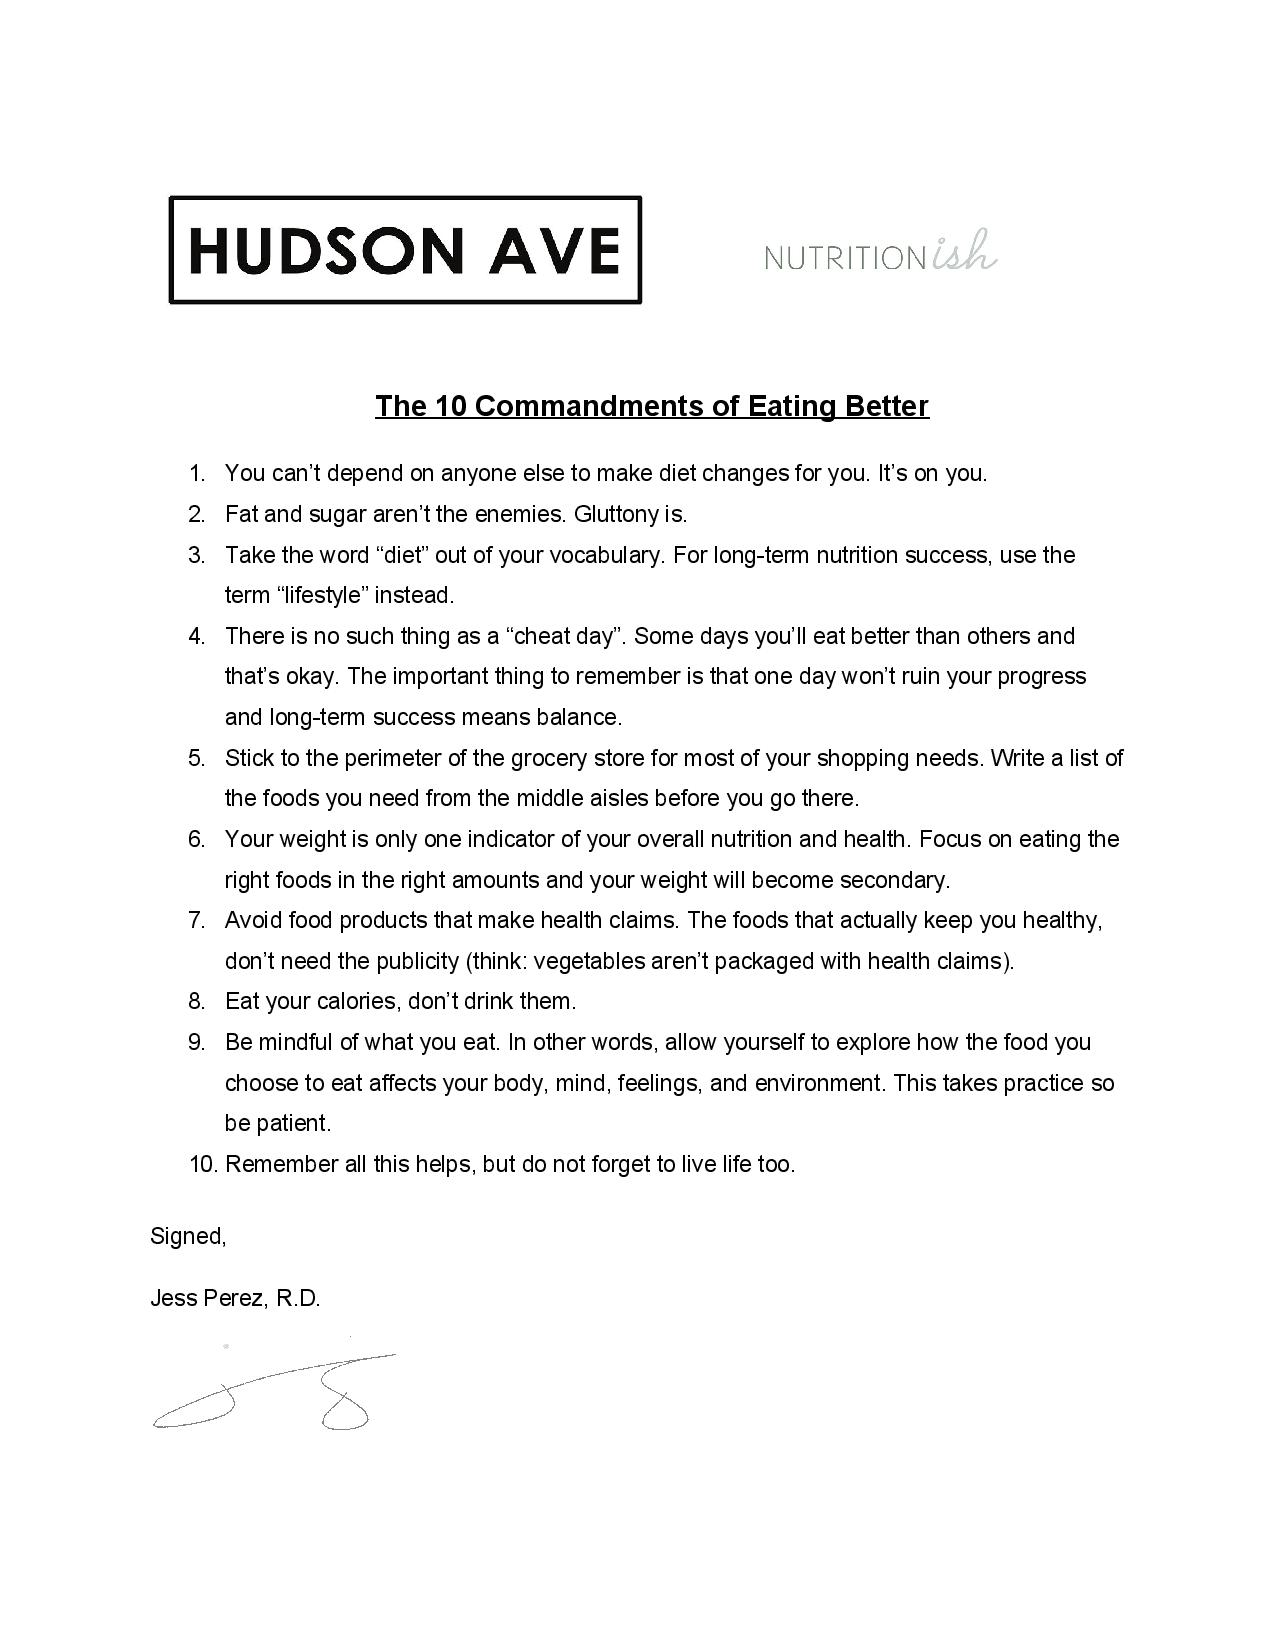 The 10 Commandments of Eating Better (2)-page-001.jpg